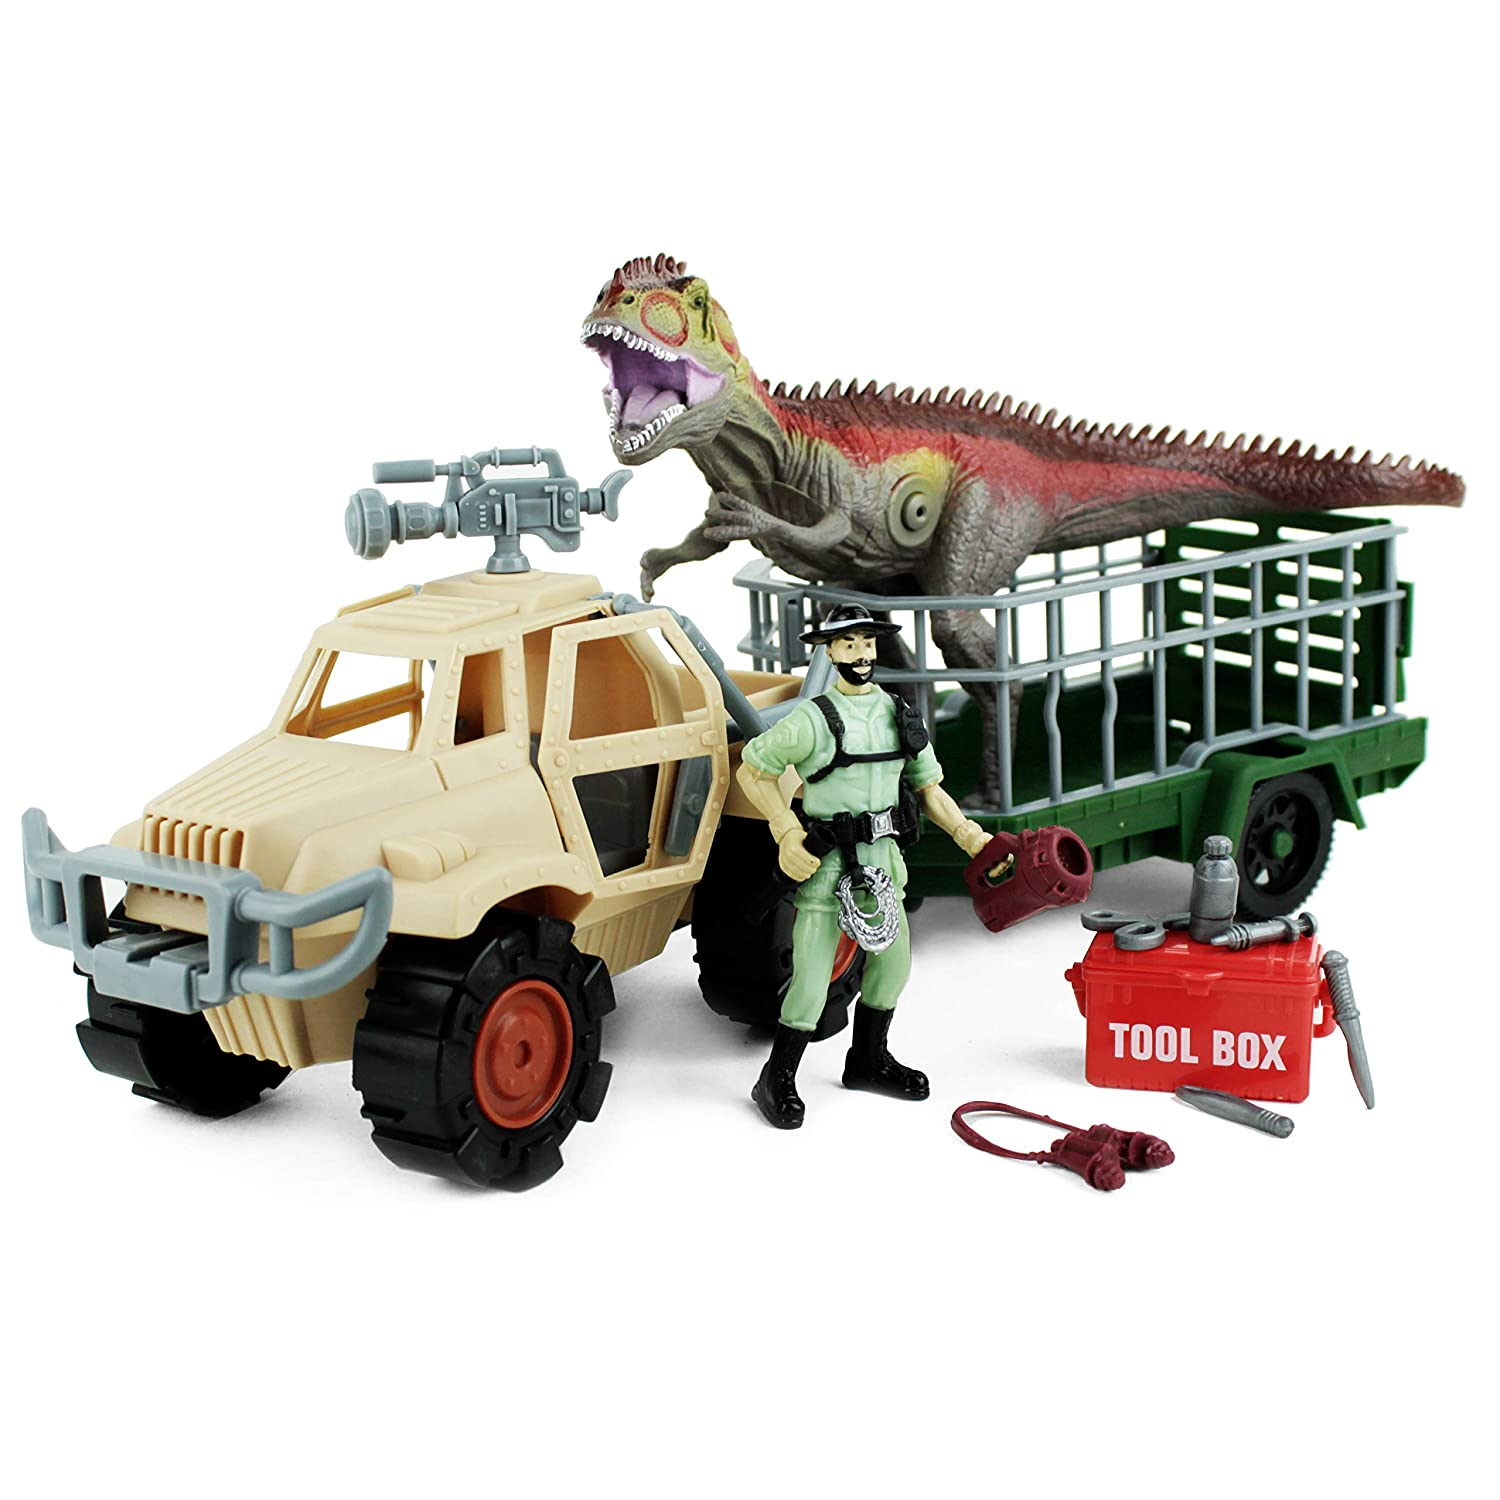 Boley Dinosaur Explorer Toy - Includes a Roaring T-Rex Dinosaur - 13 Piece Playset - Offers Hours of Pretend Play!